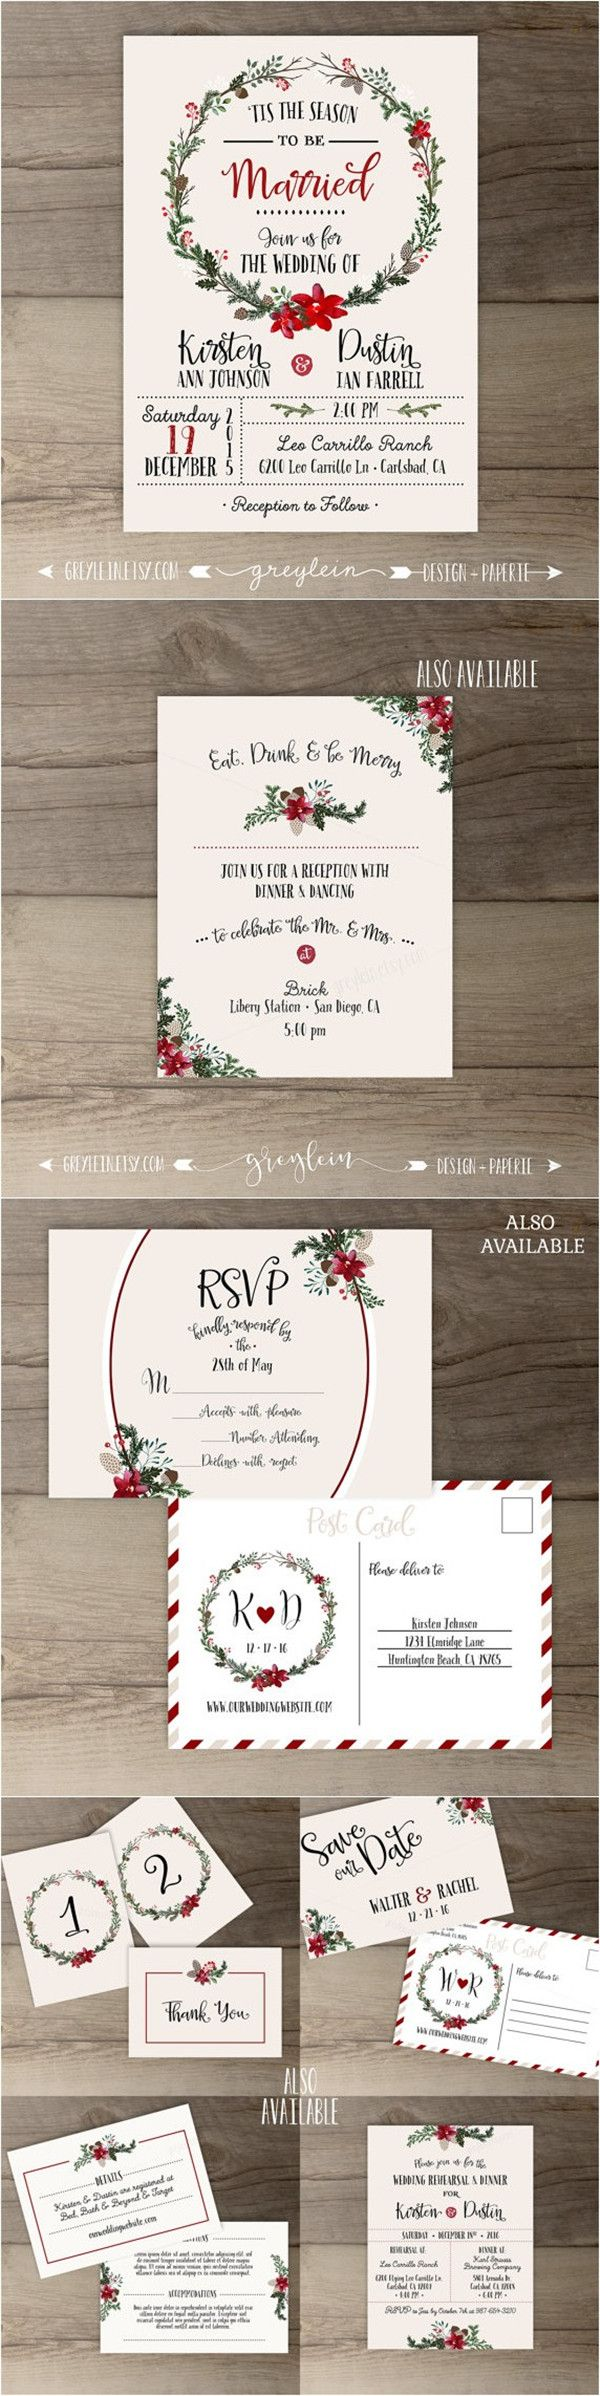 Pinecone and red berry themed Christmas Wedding